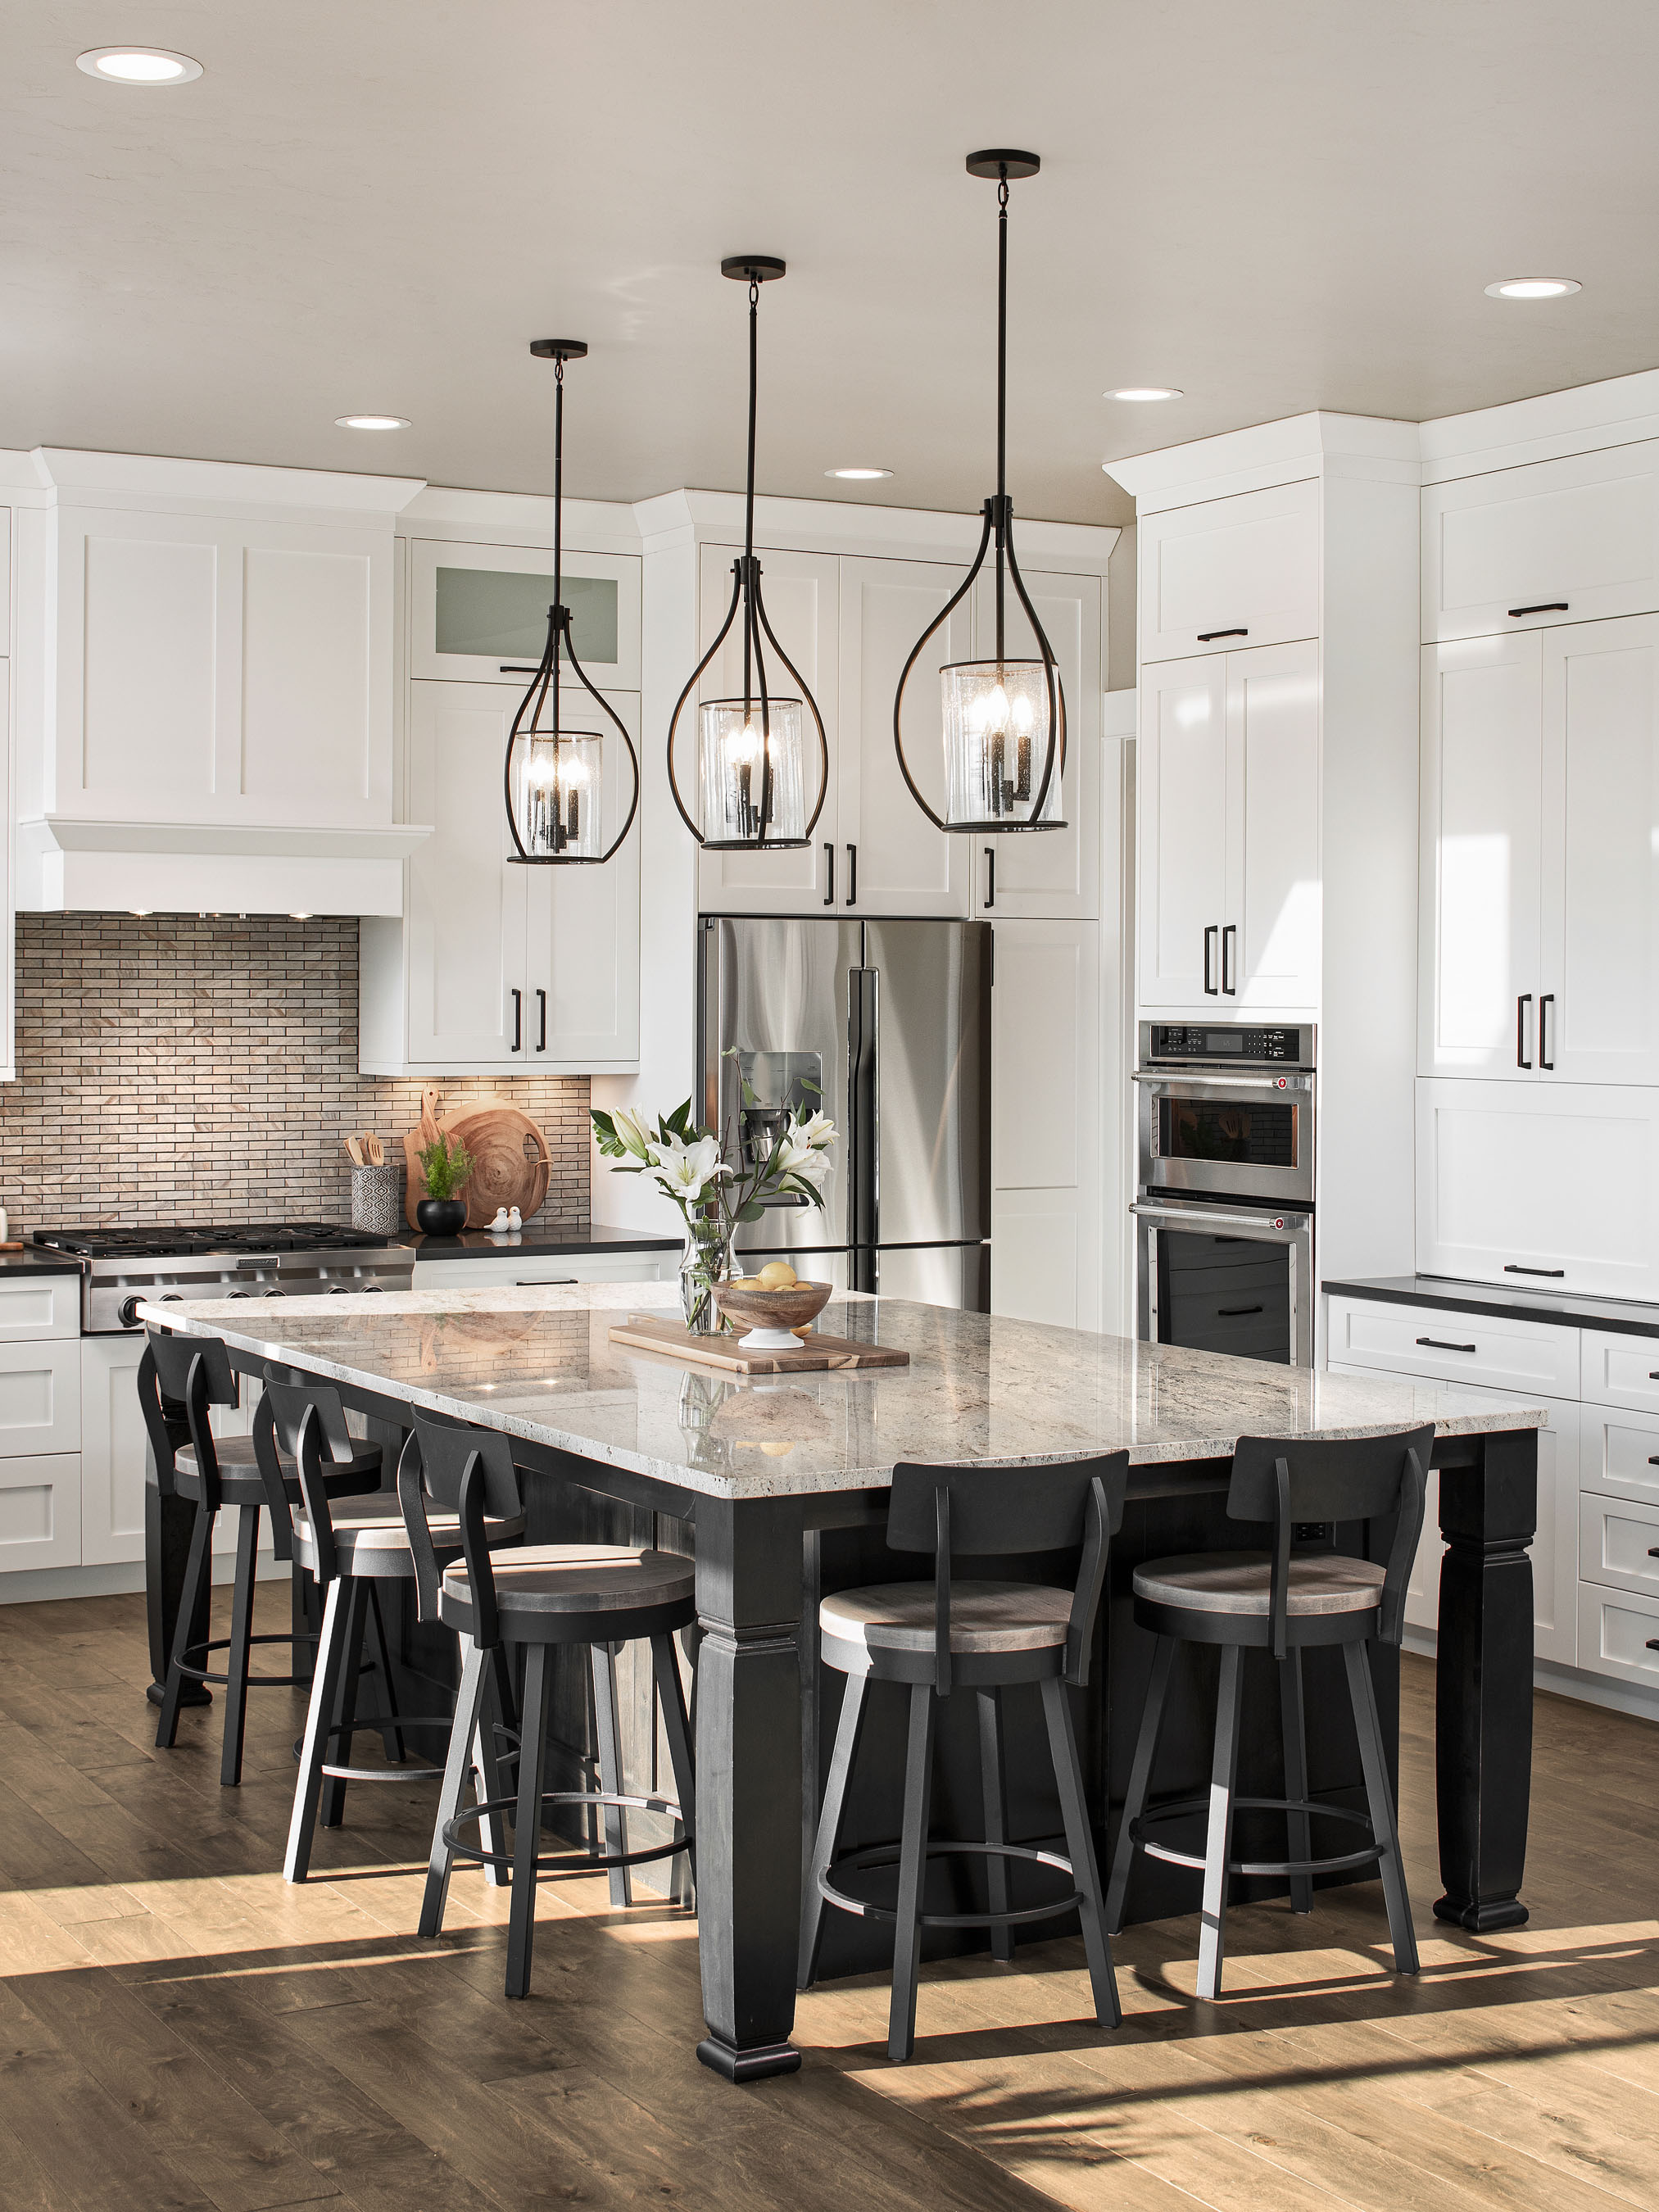 Interior photography of kitchen with white cabinets–Timnath, Colorado residence located in WildWing.